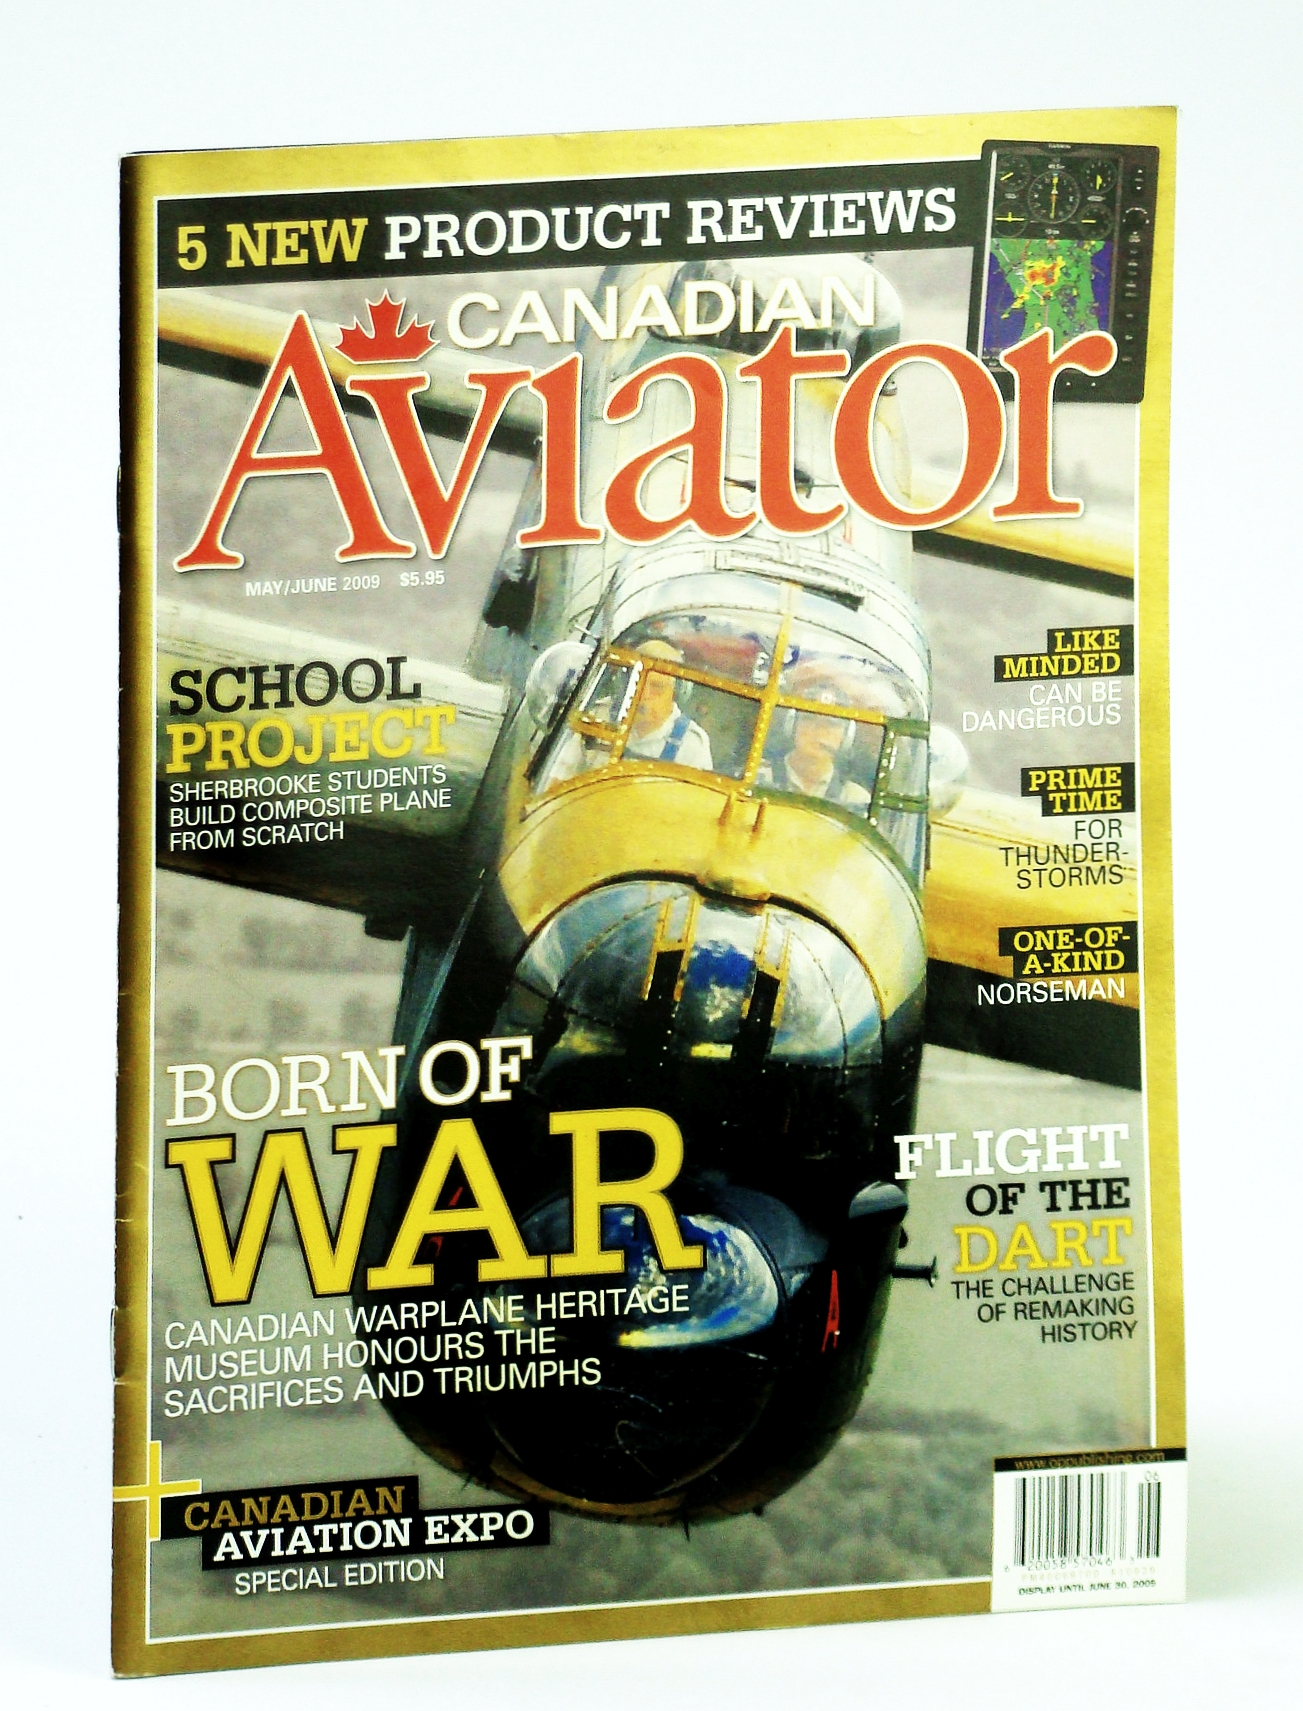 Image for Canadian Aviator Magazine, May / June 2009 - Sherbrooke Students Build Composite Plane from Scratch